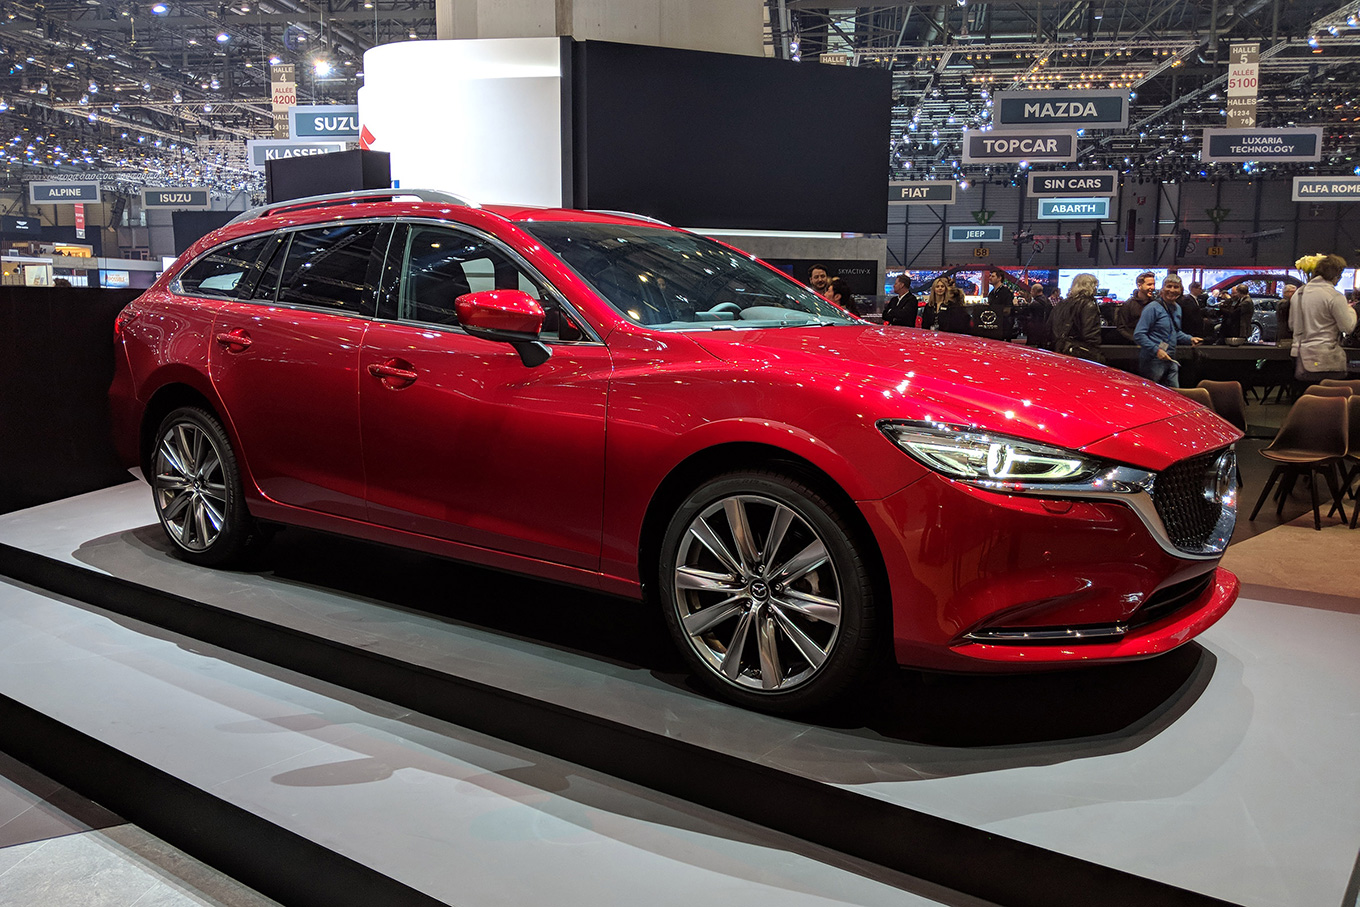 2018 mazda6 wagon. Black Bedroom Furniture Sets. Home Design Ideas